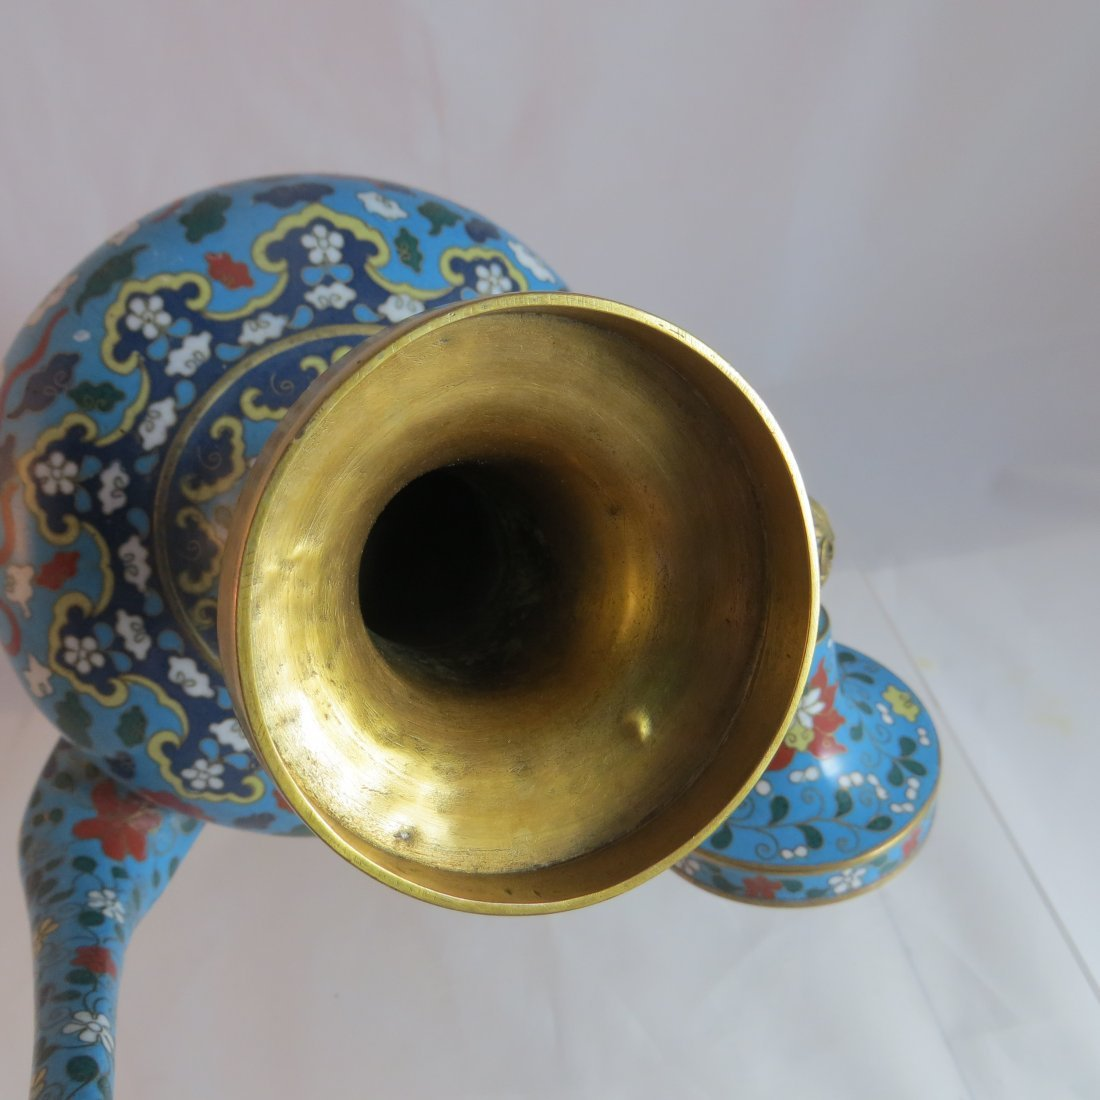 Chinese Qing Dynasty Cloisonne Tea/Coffee Pot - 6